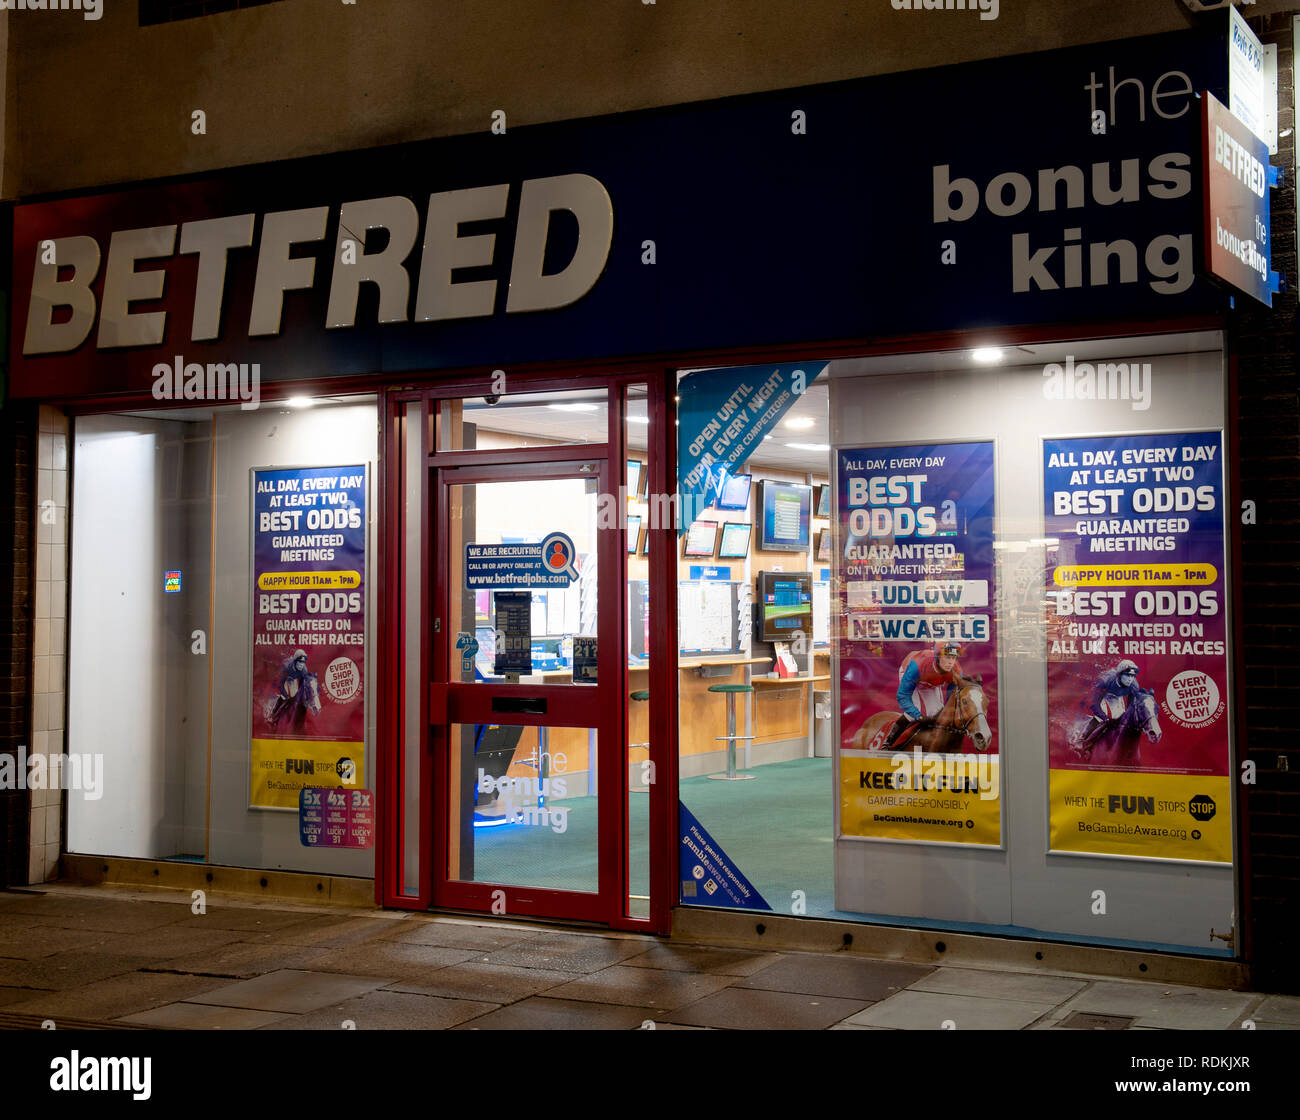 Betfred betting Shop, High Street, Cosham, Portsmouth, Hampshire, England, UK. Stock Photo